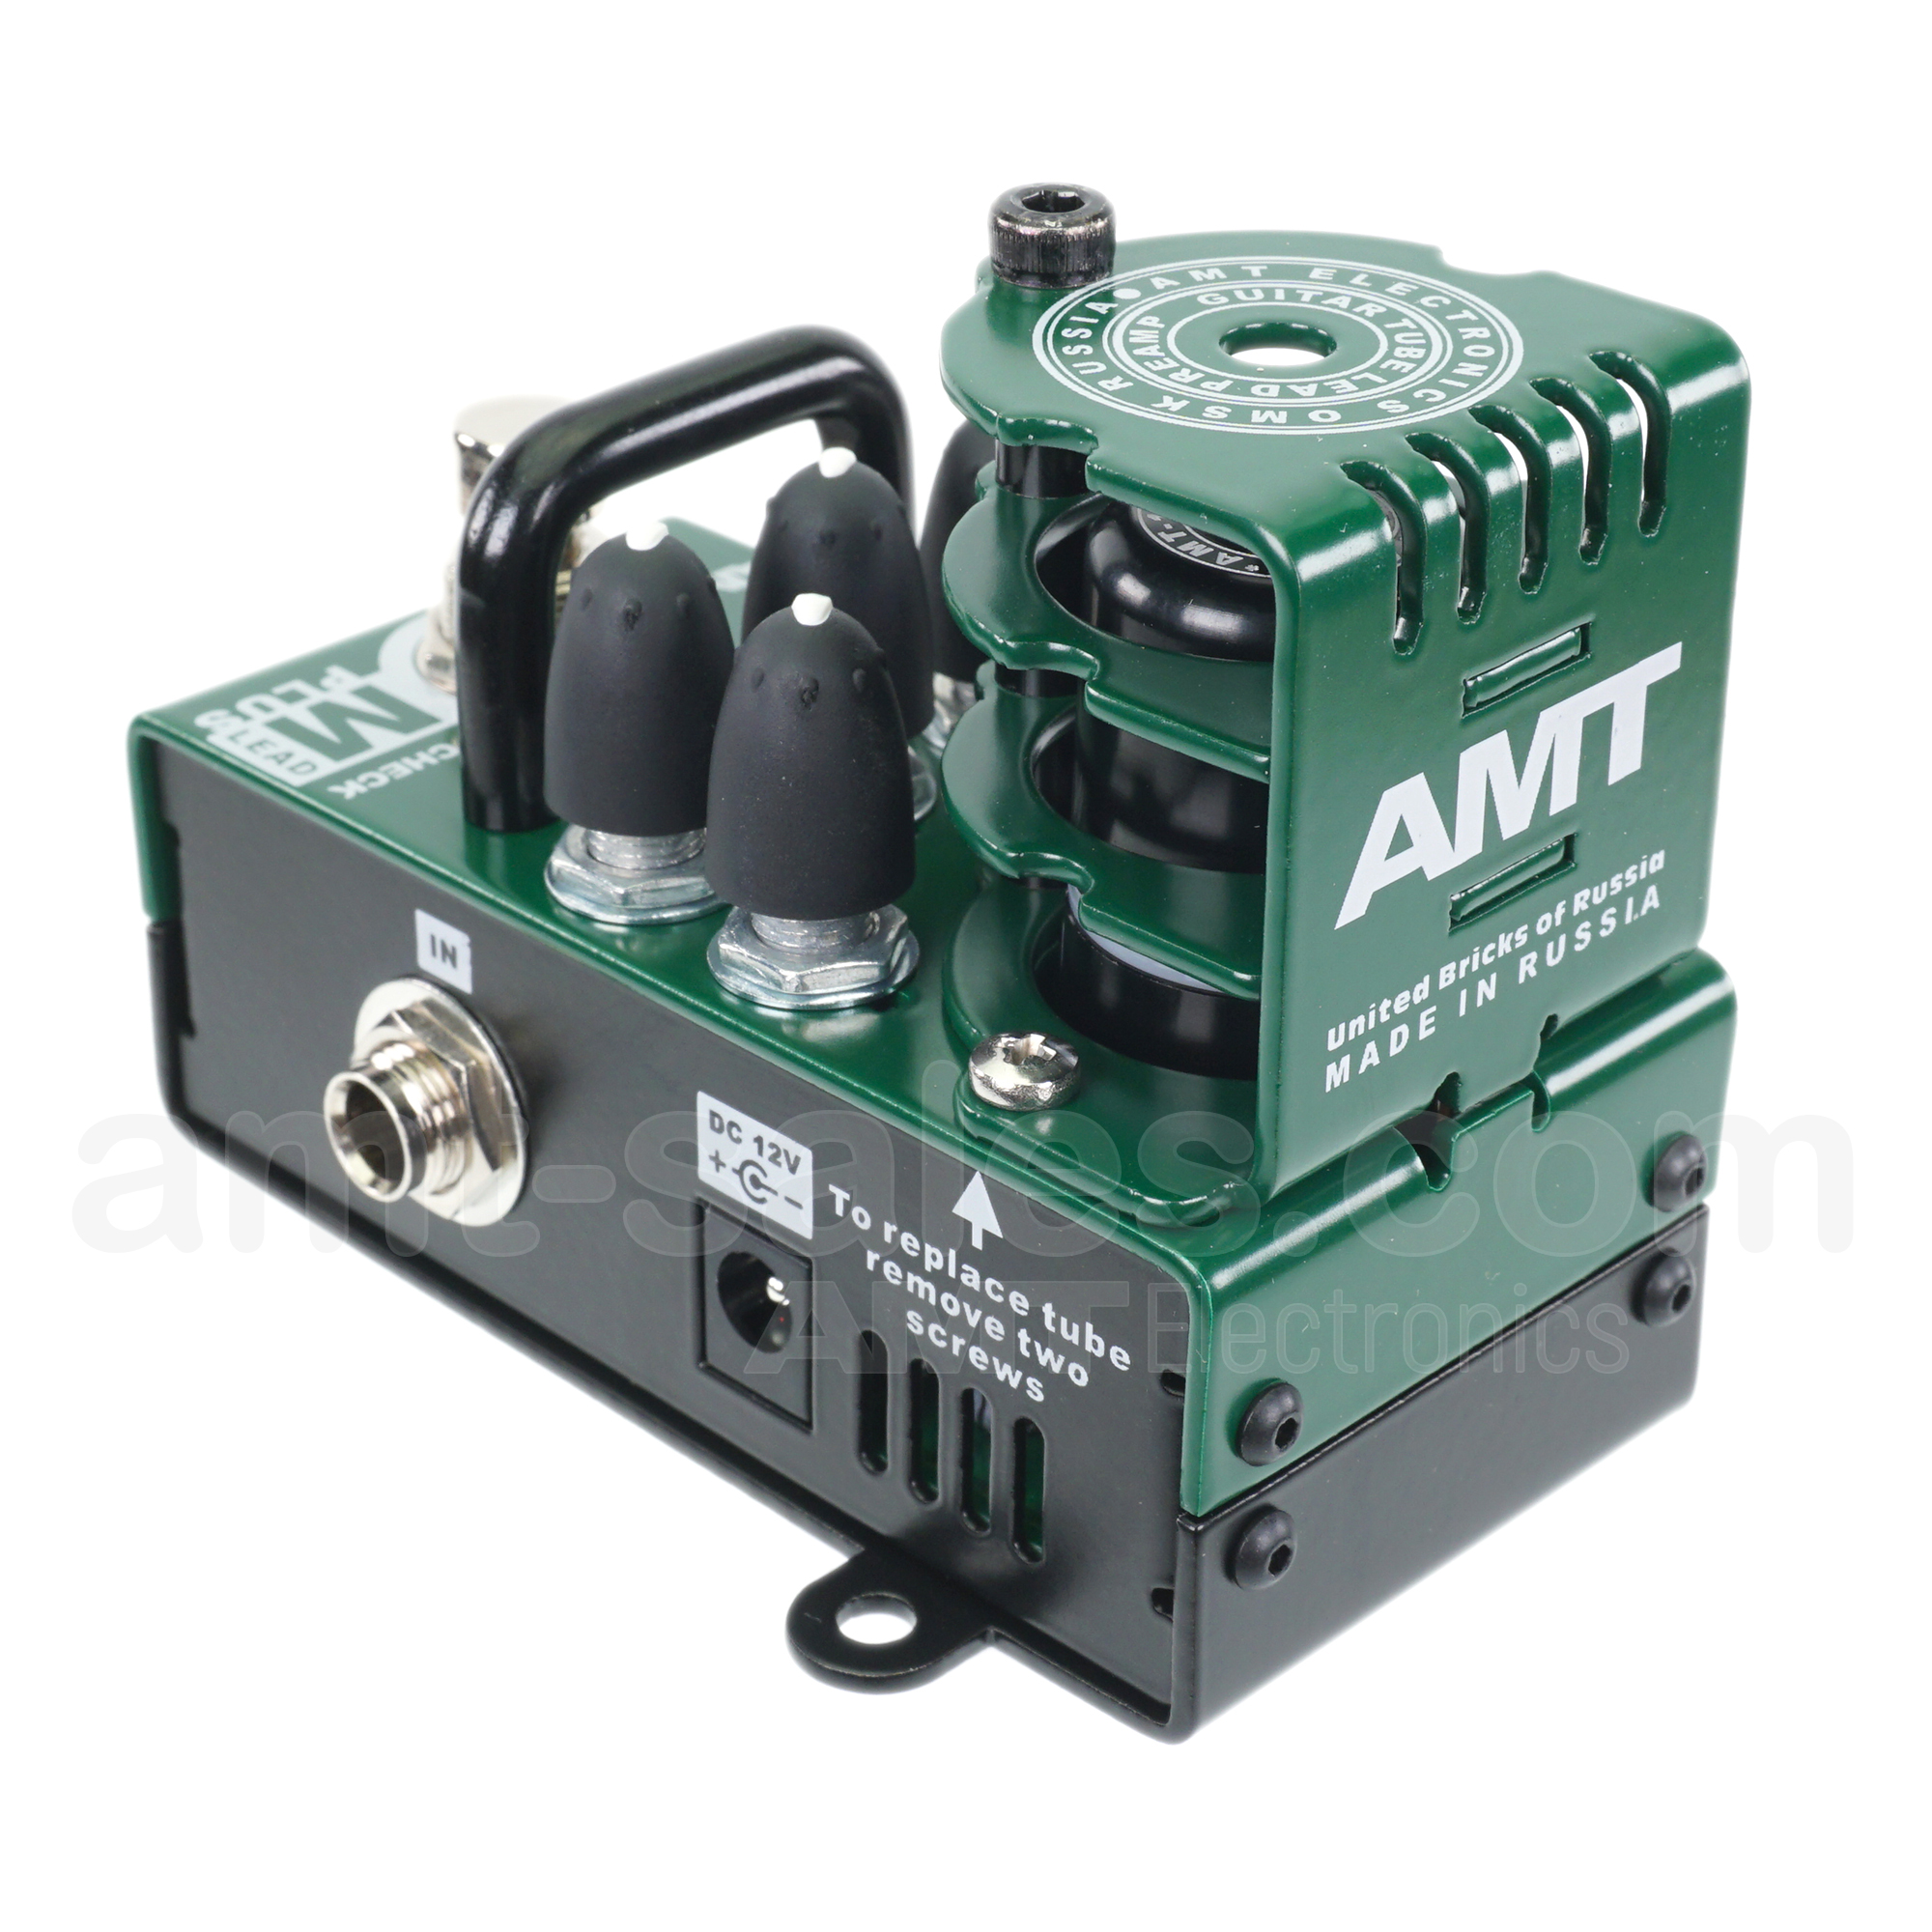 AMT Bricks M-Lead PLUS - 1 channel tube guitar preamp (JCM800 Mod Emulates)